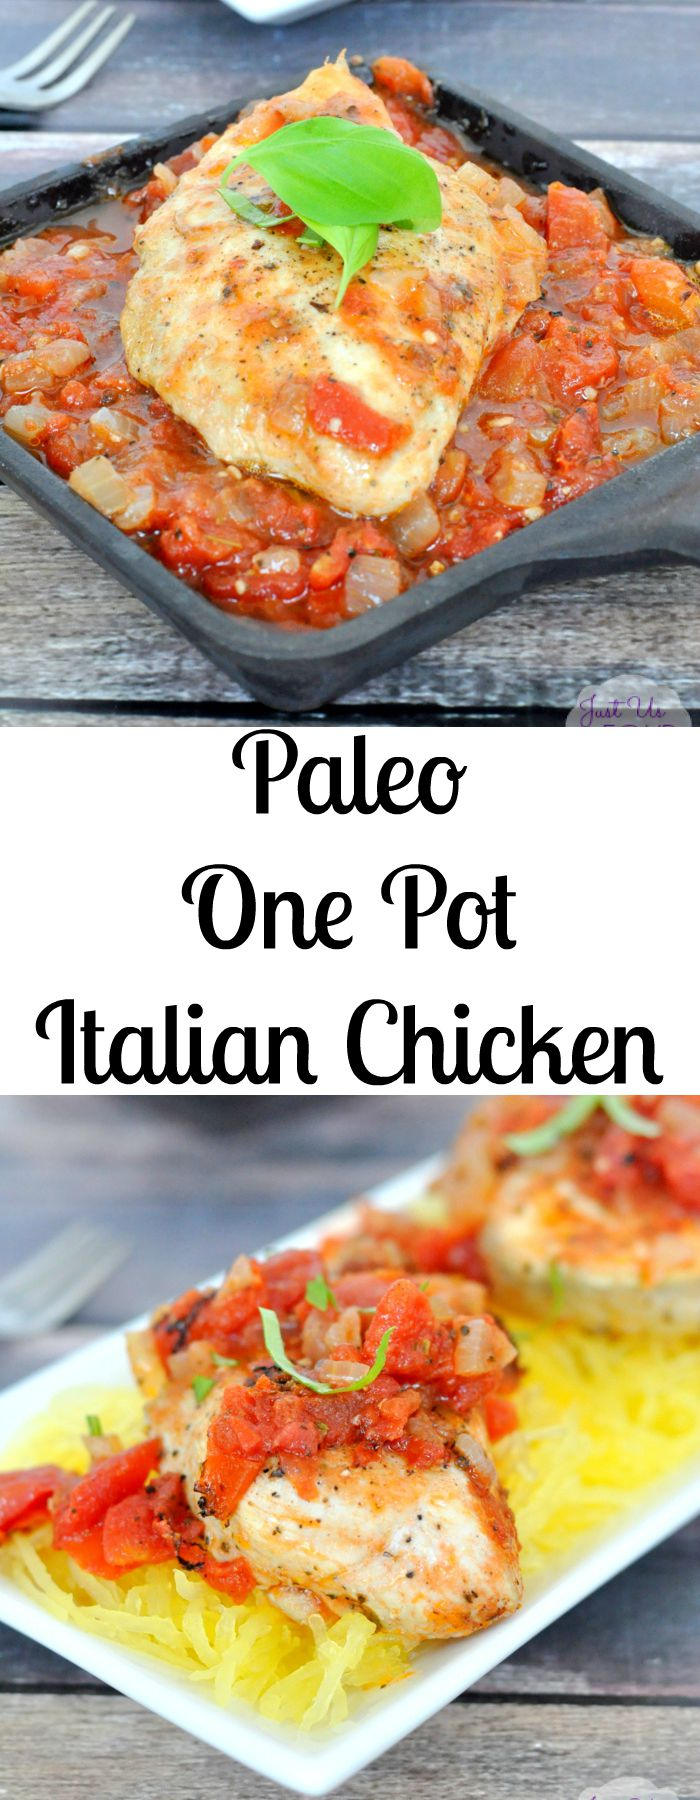 Paleo One Pot Italian Chicken is the perfect meal for busy nights or when you don't want to get a lot of dishes dirty!